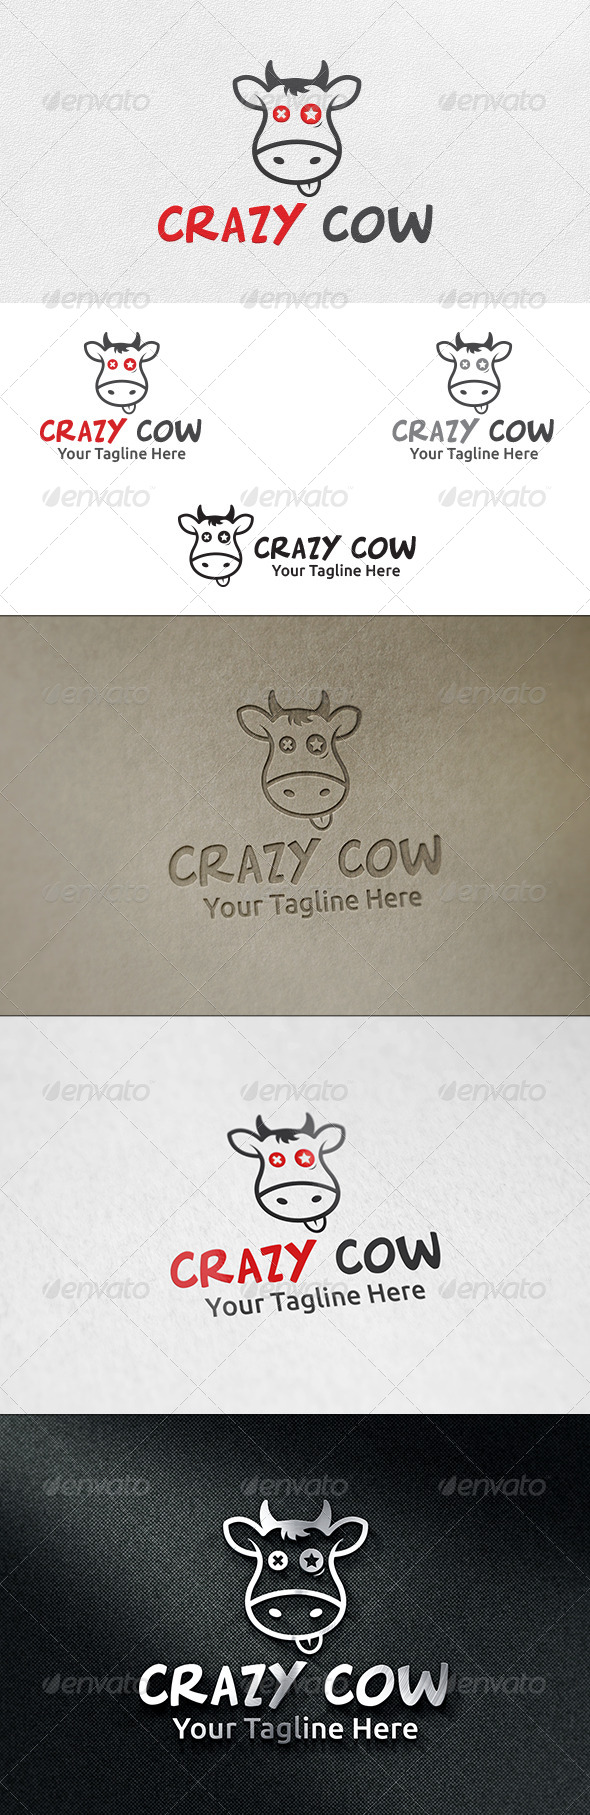 GraphicRiver Crazy Cow Logo Template 6458827